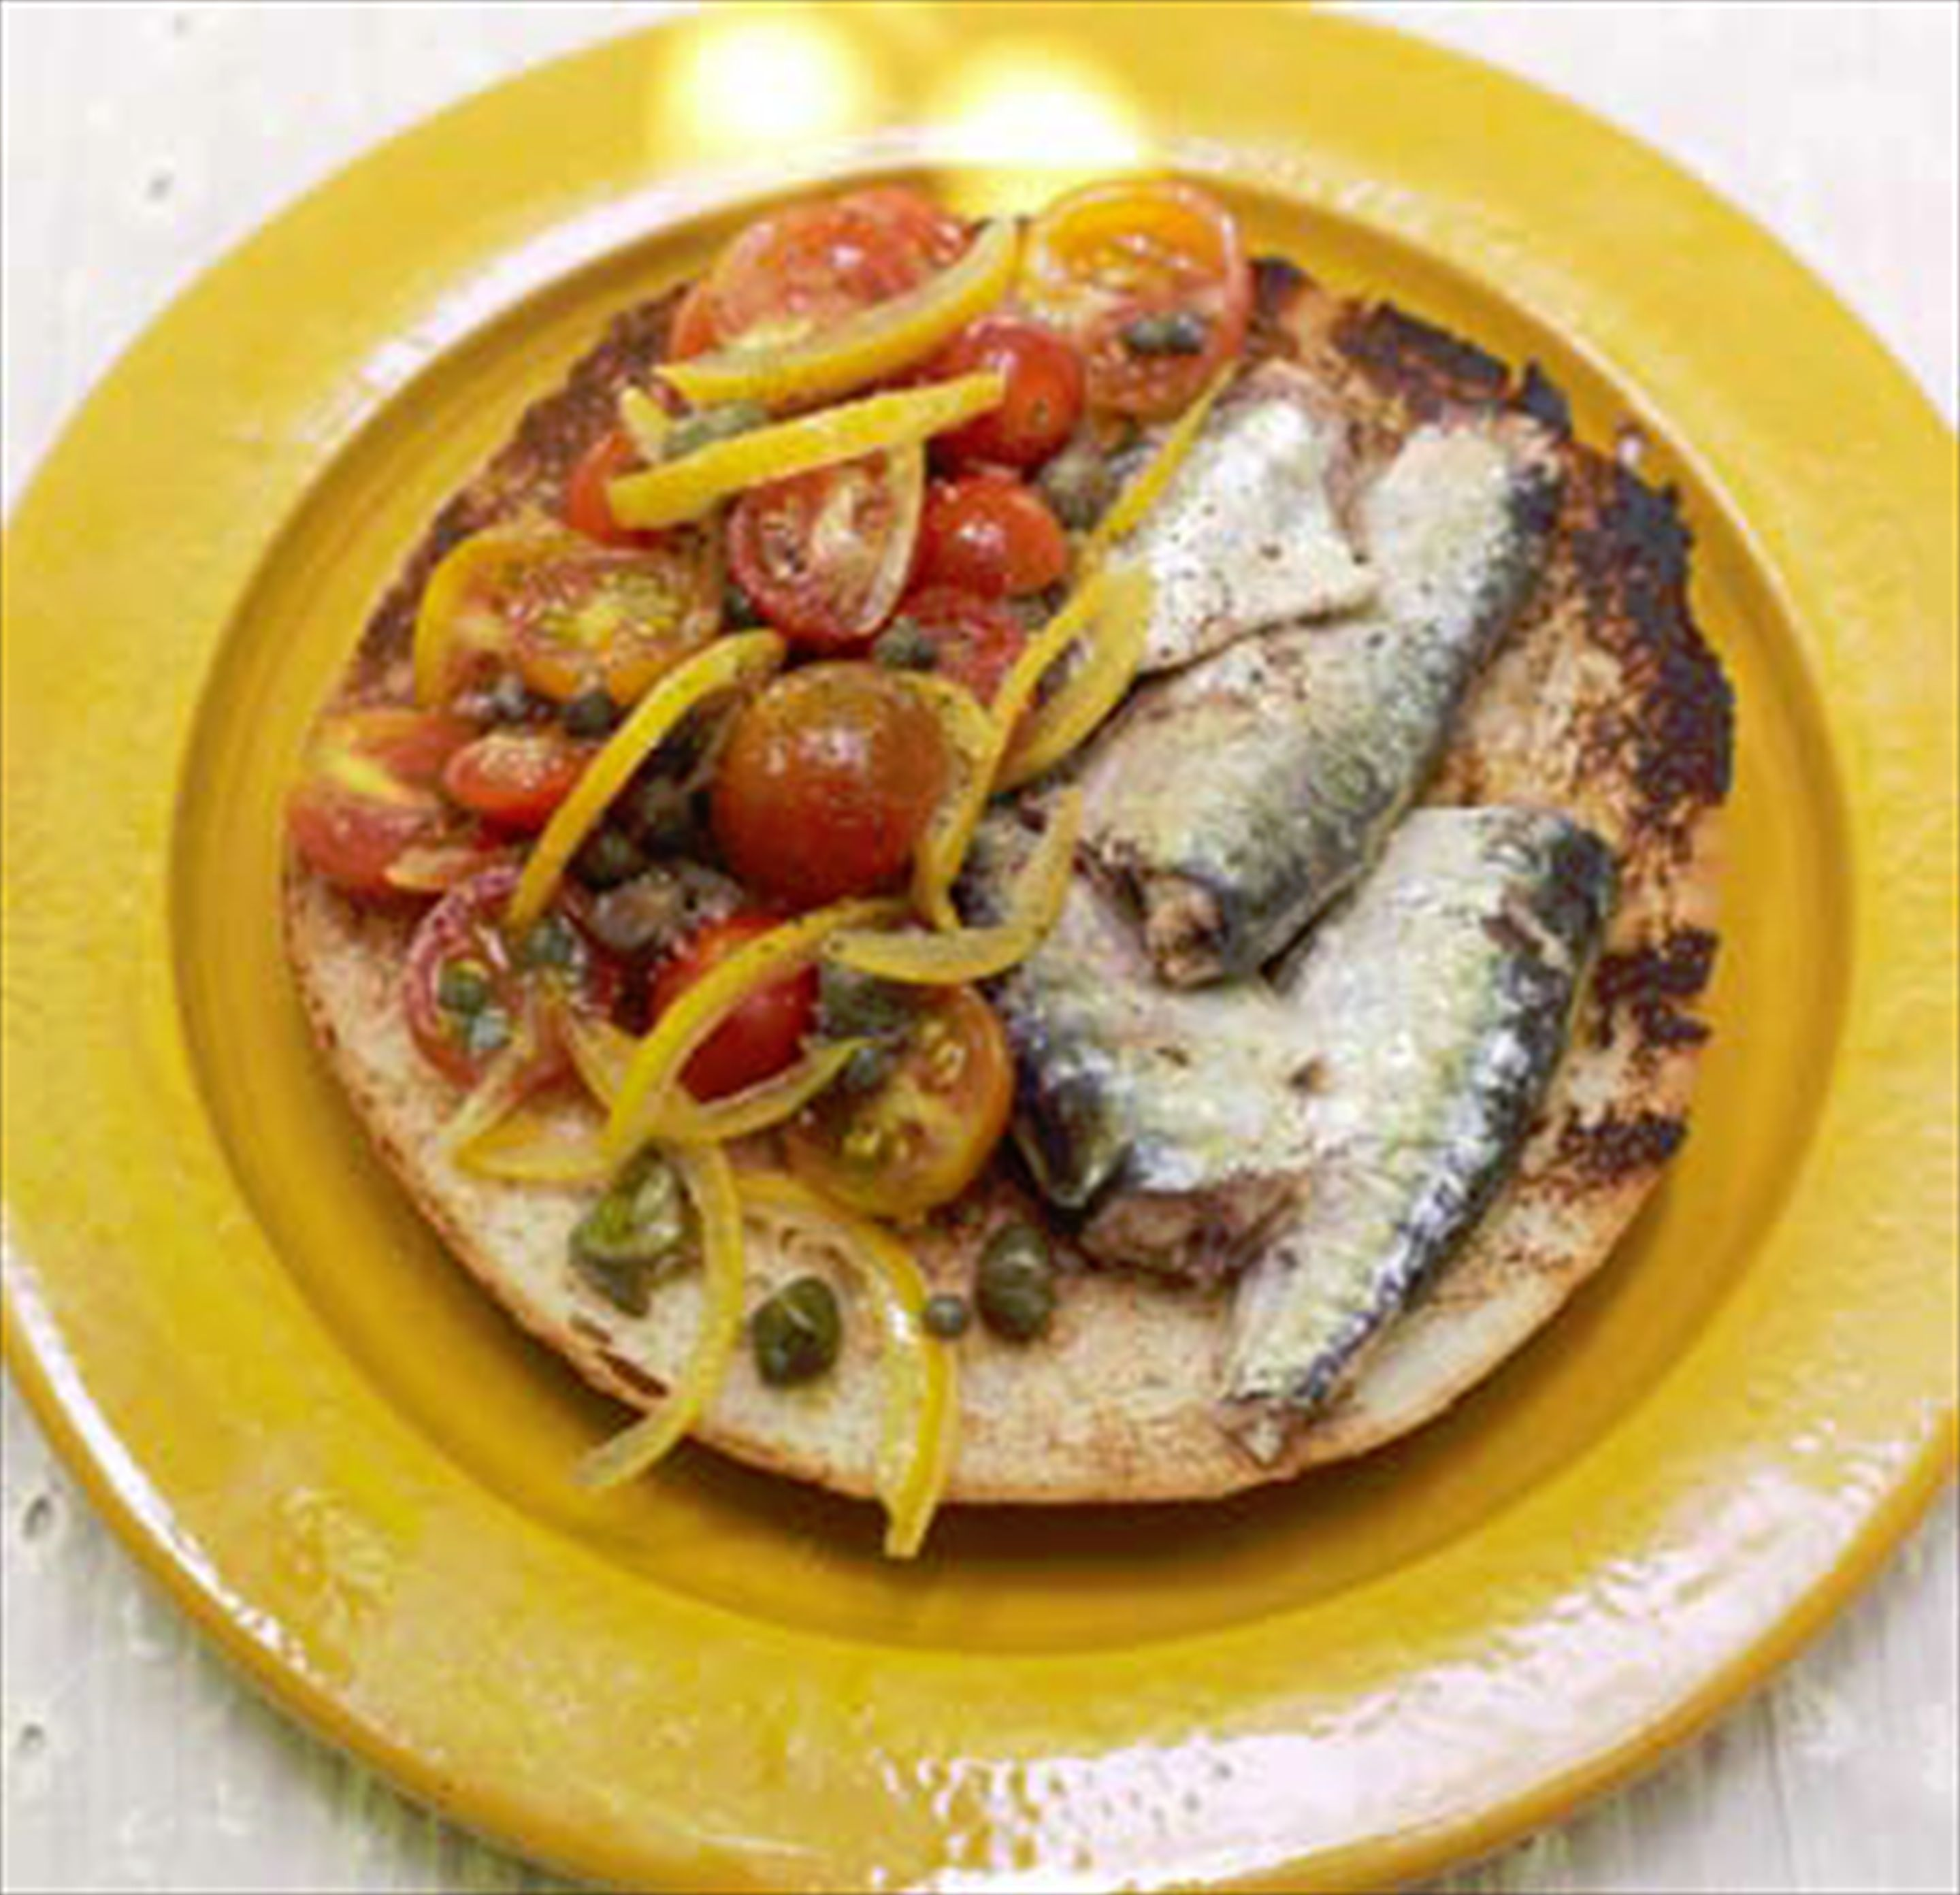 Sardines on toast with cherry tomato & preserved lemon salad